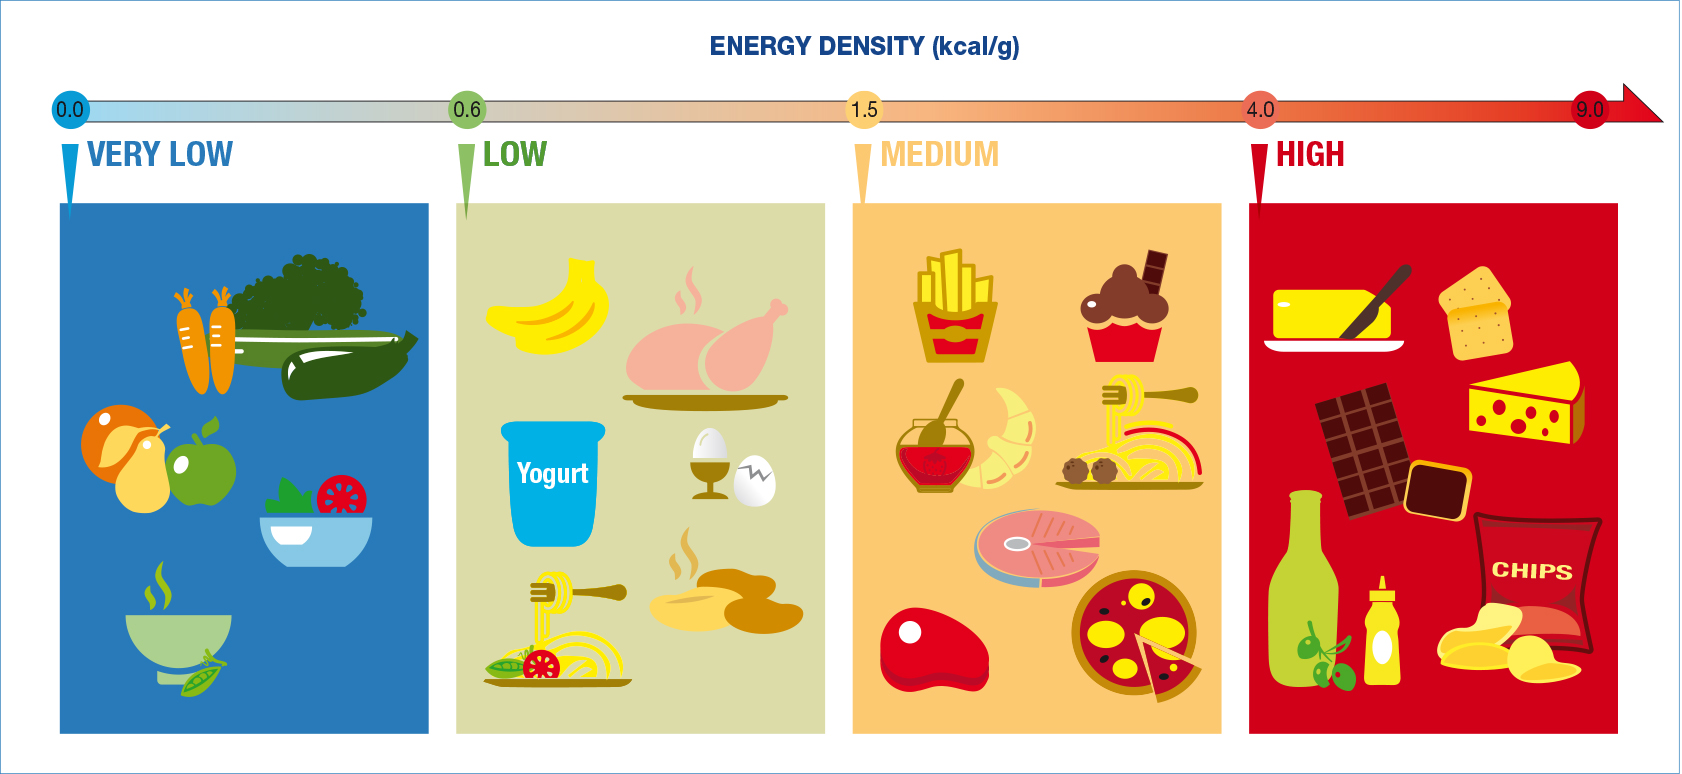 low and high energy density foods to fine-tune your nutrition